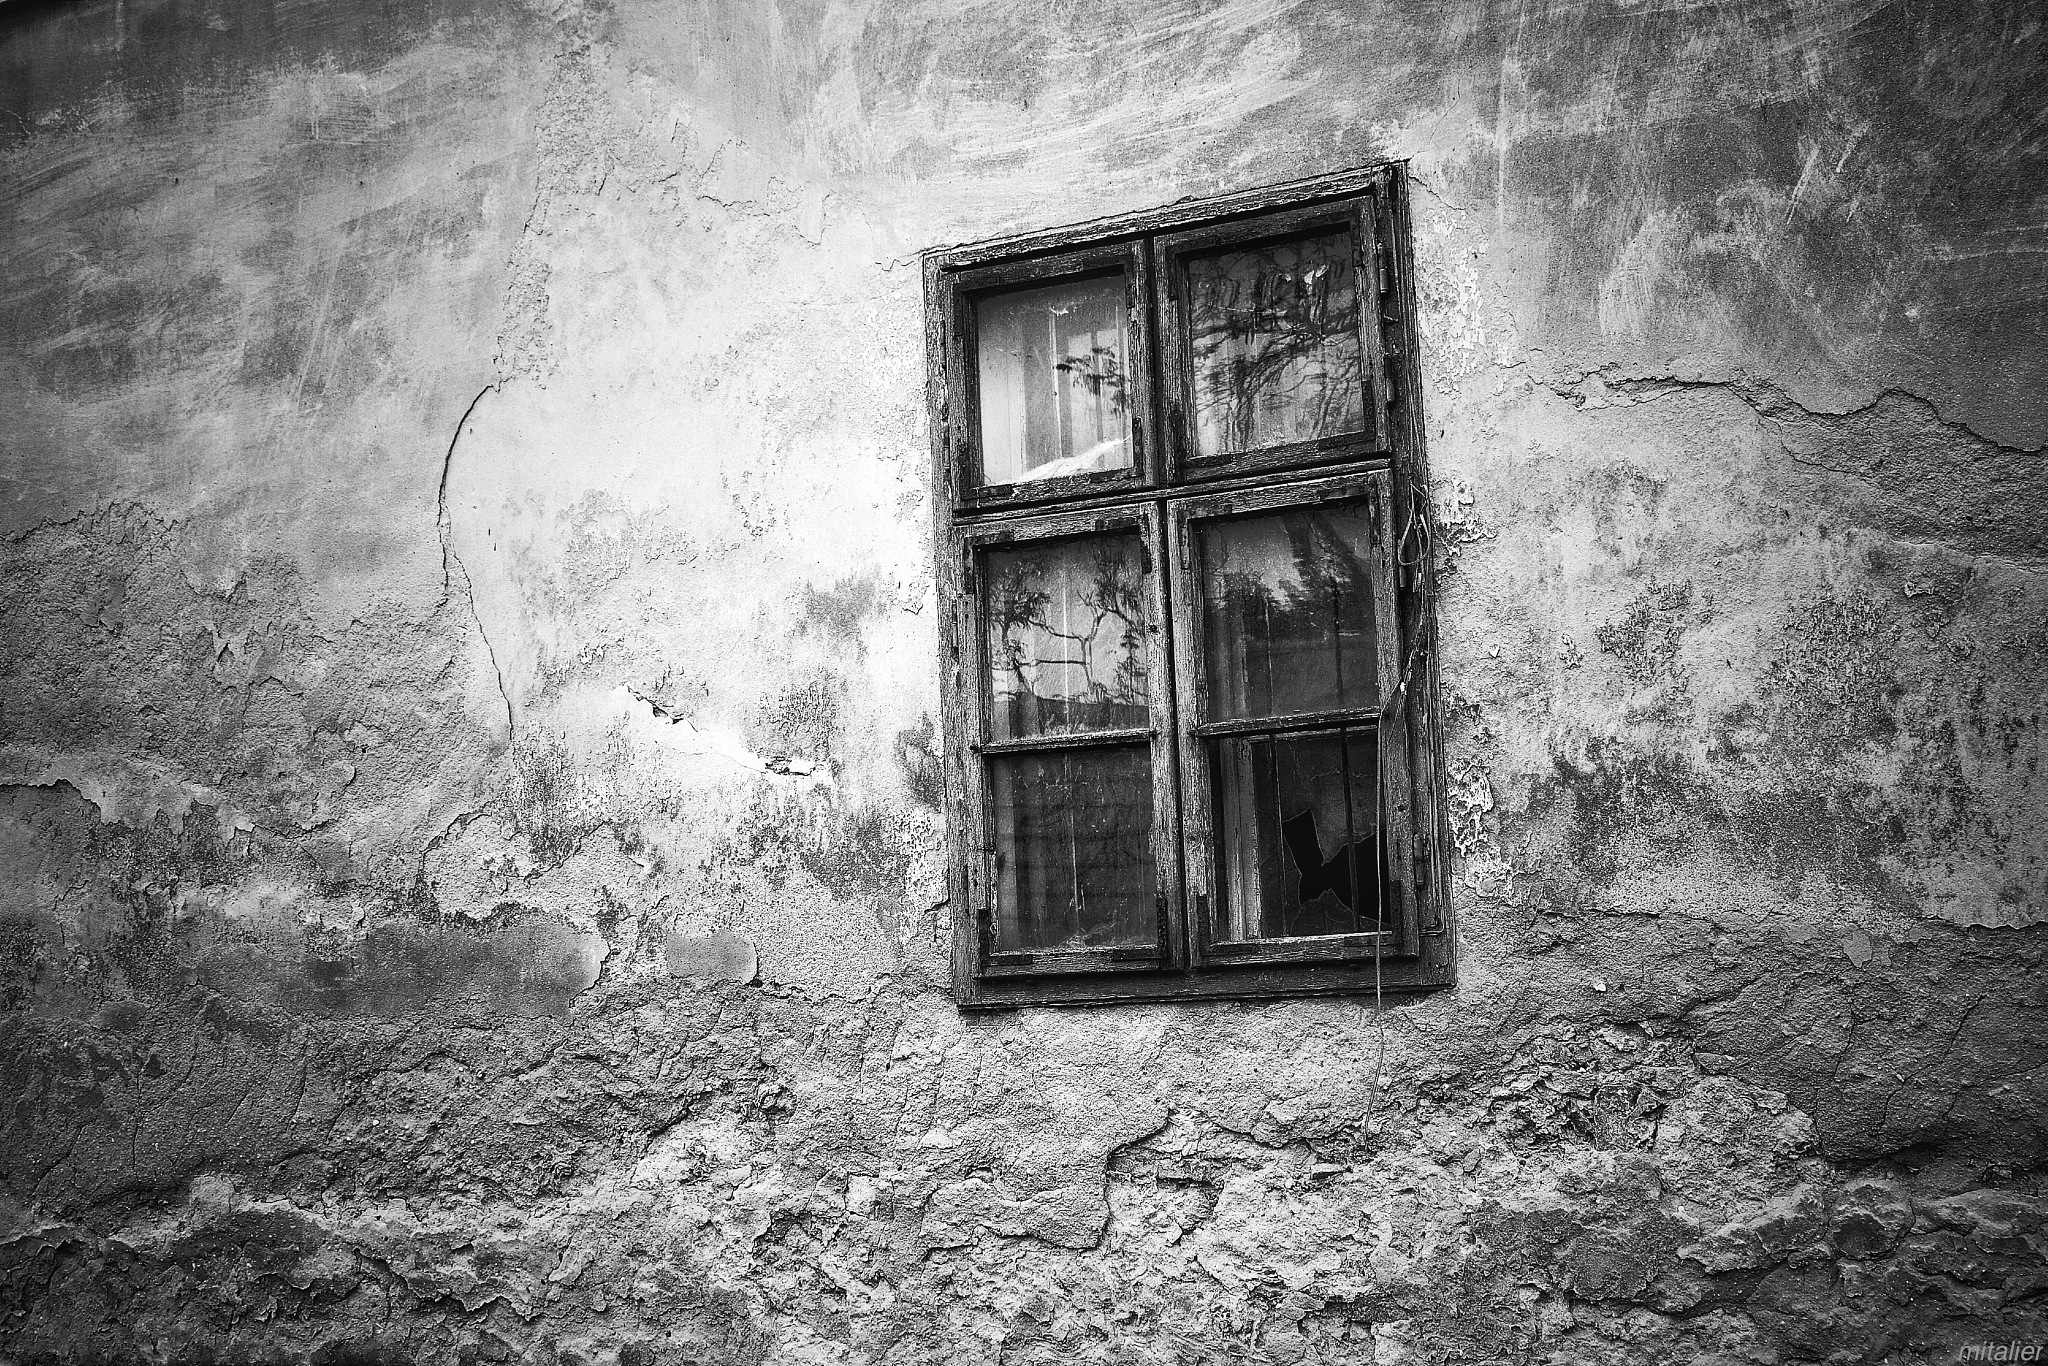 The window looked at me... by Mitalier